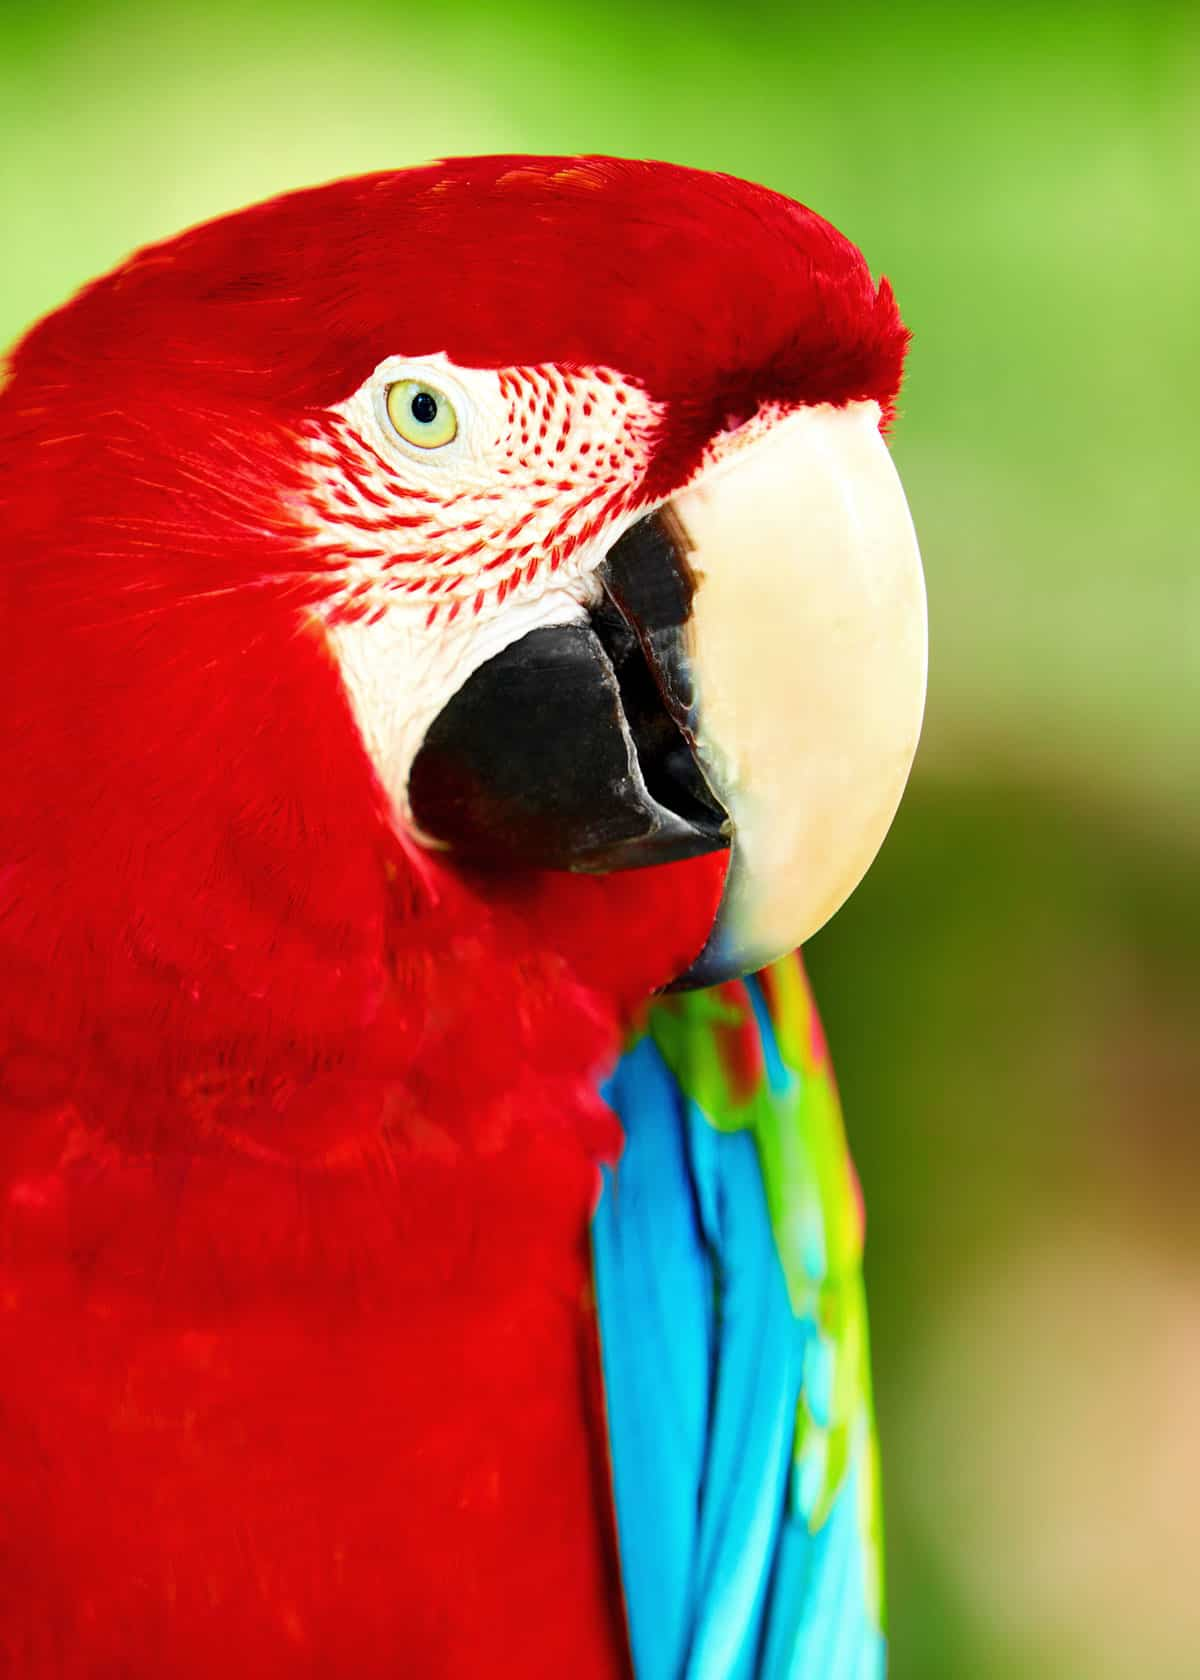 Do scarlet macaws make good pets?